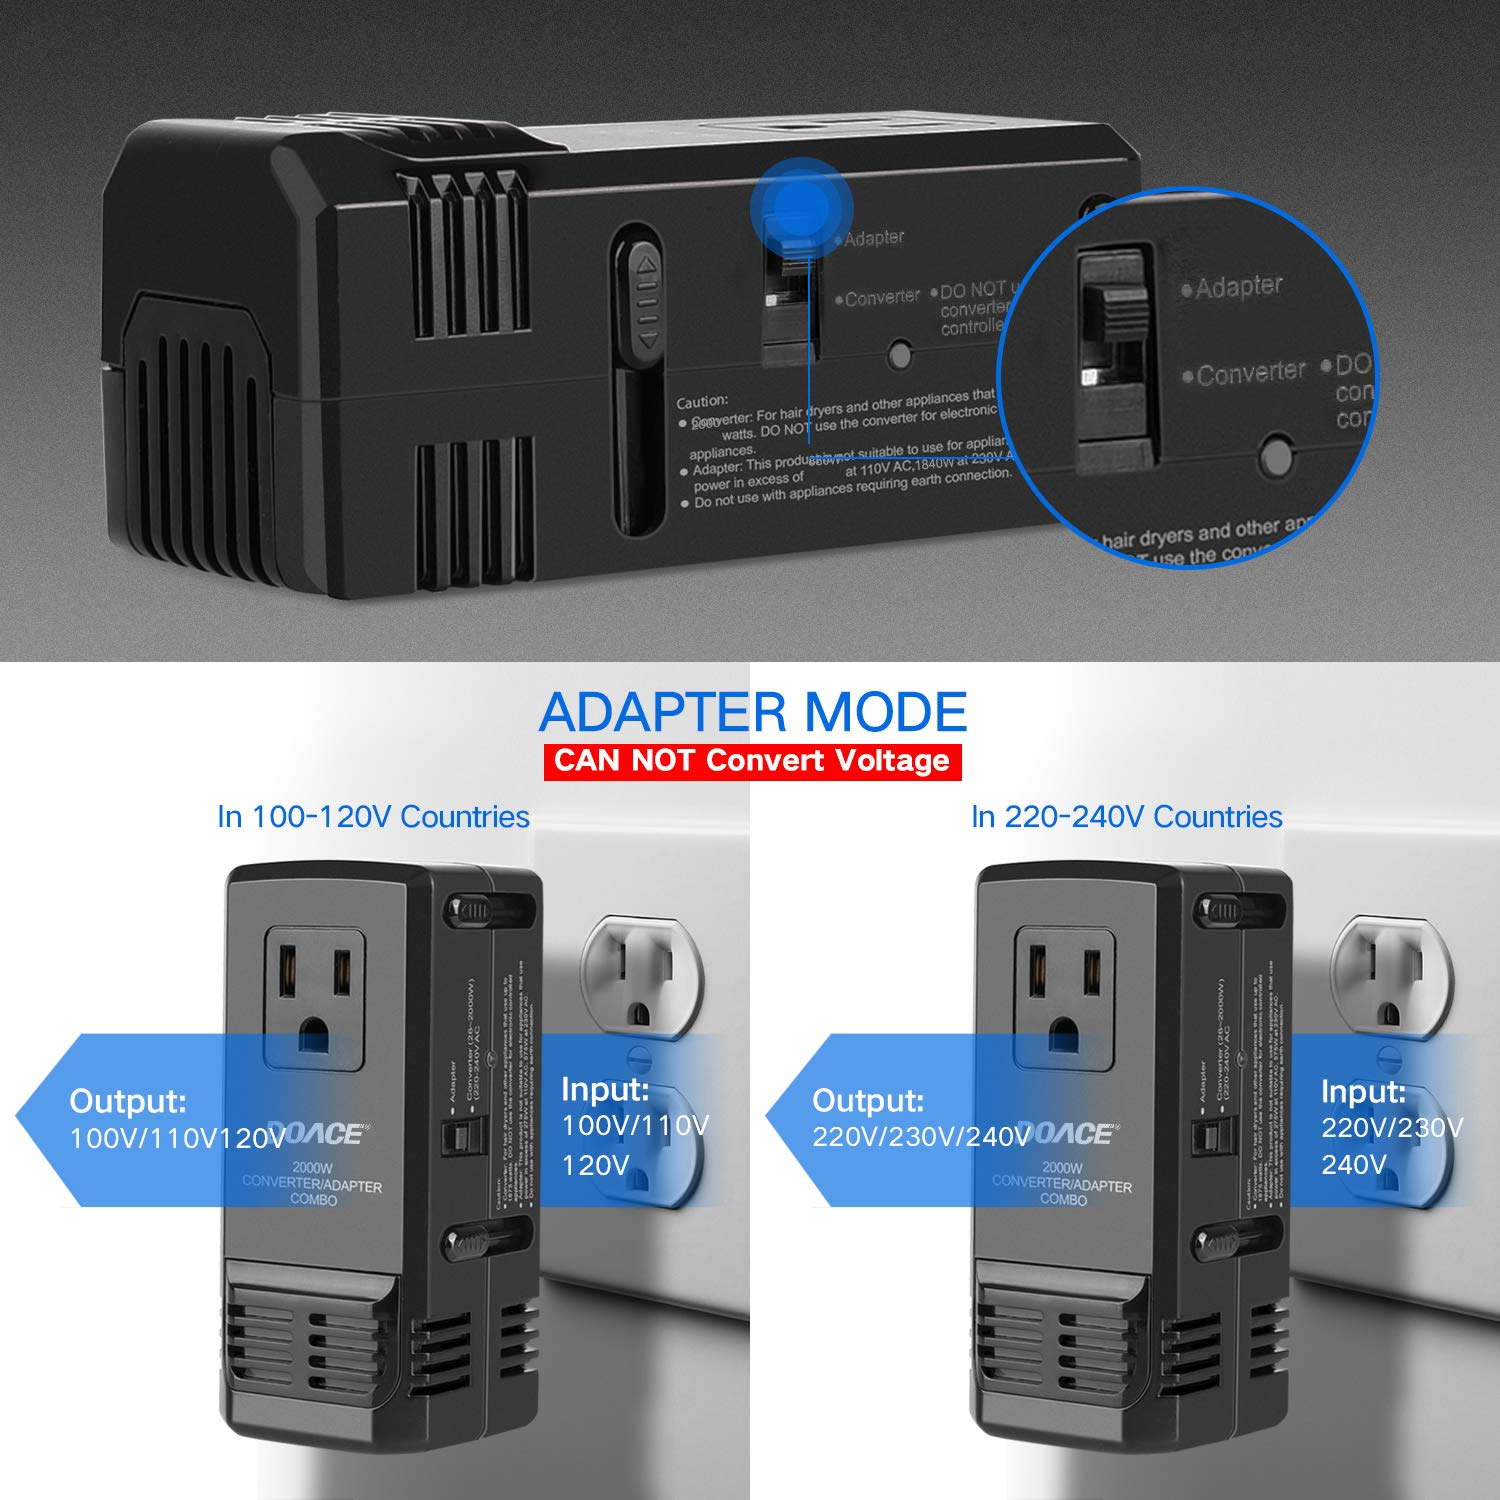 C11 Power Transformers UK//AU//US//EU Plug Adapter Set Down 220V to 110V International Travel Transformer Hair Straightener Flat Iron 2018 Upgraded DOACE 2000W Voltage Converter for Hair Dryer